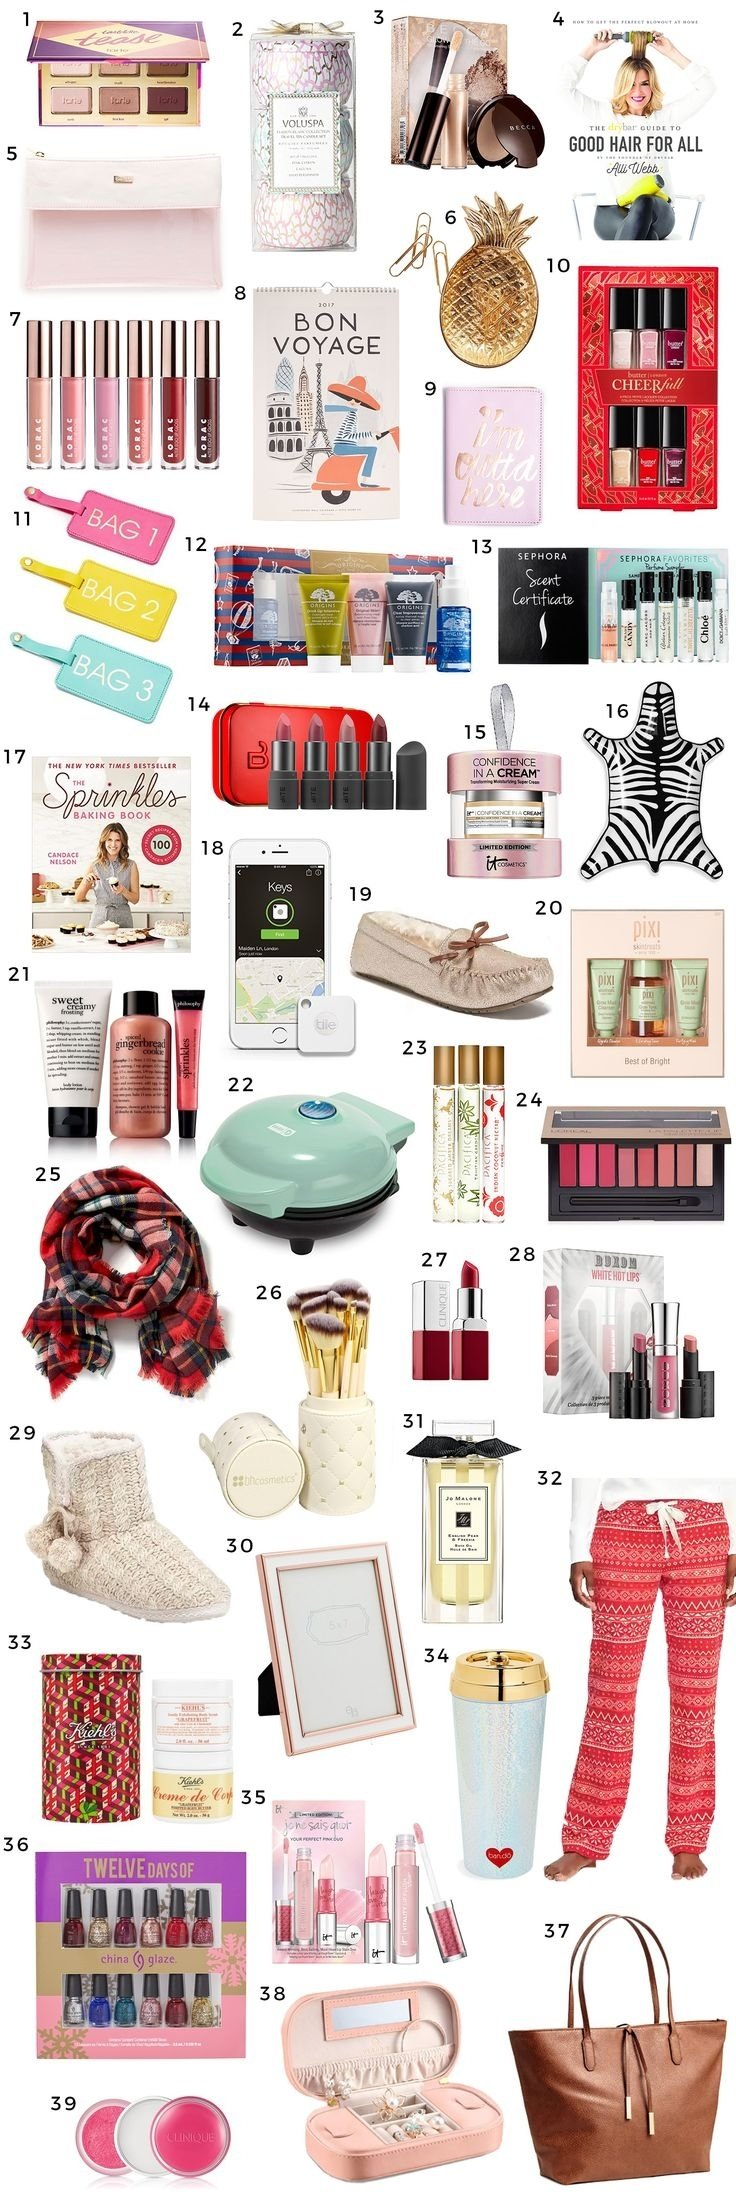 10 Stylish Good Ideas For Christmas Presents stocking stuffers for teens stocking stuffers madewell and stockings